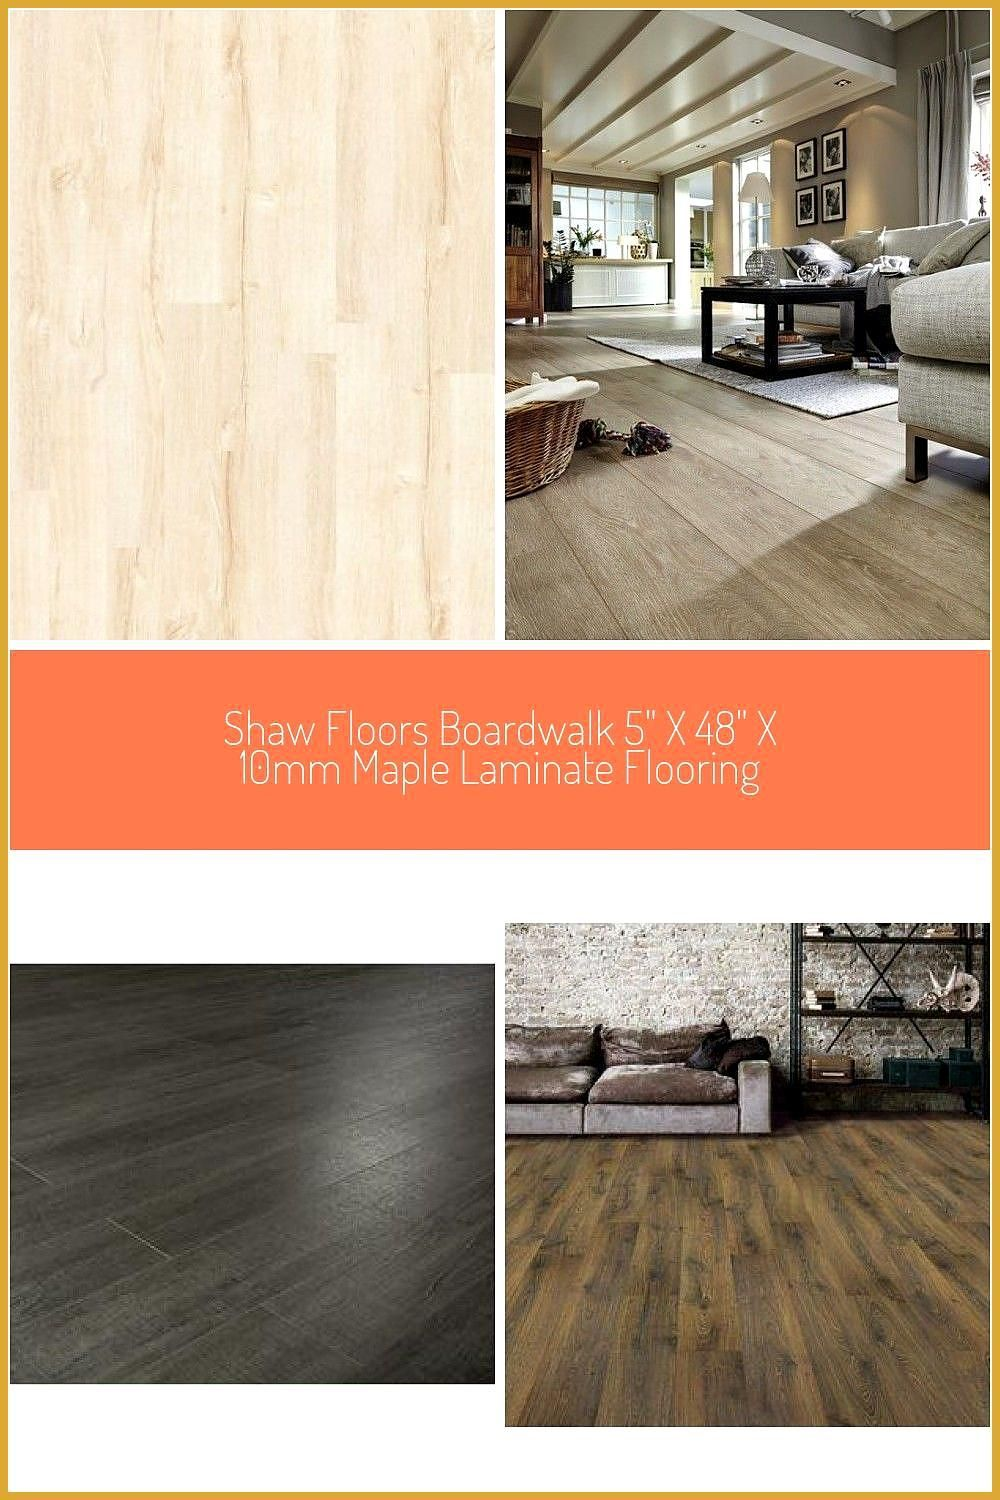 Shaw Floors Boulevard 5 8243 X 48 8243 X 10mm Maple Laminate Flooring Color Crisp Linen Lami In 2020 Maple Laminate Flooring Laminate Flooring Laminate Flooring Colors